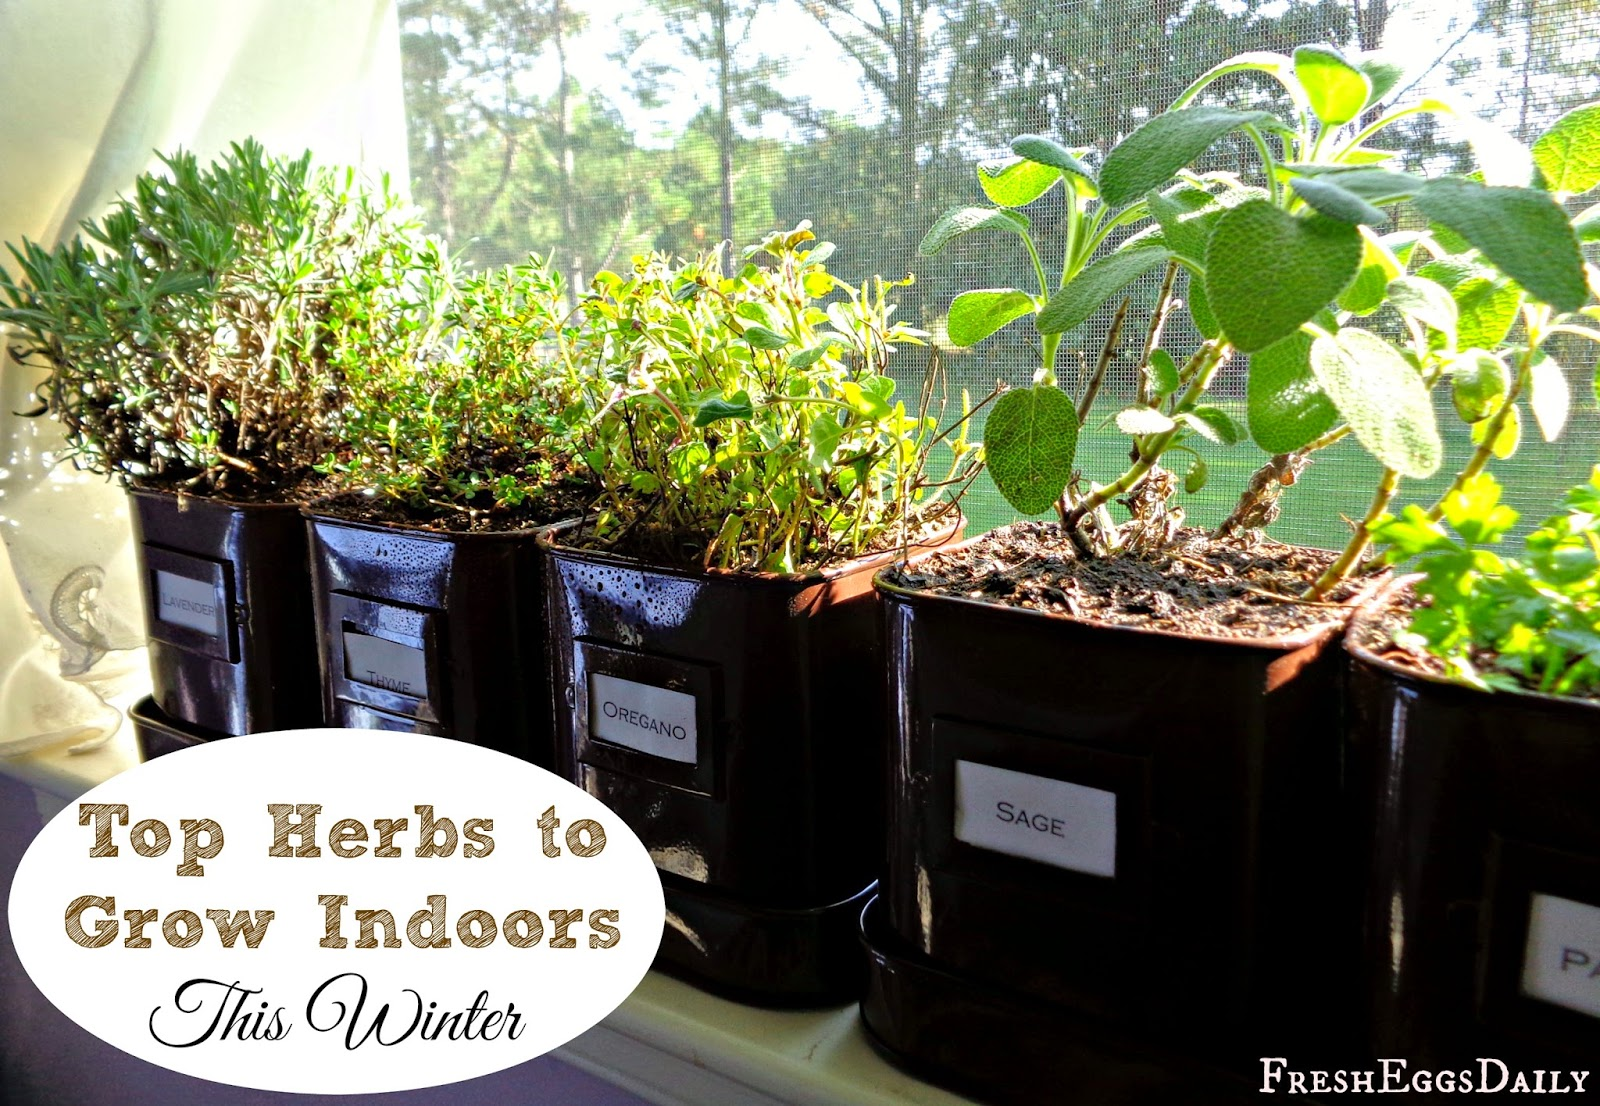 grow herbs indoors this winter my top choices fresh eggs daily